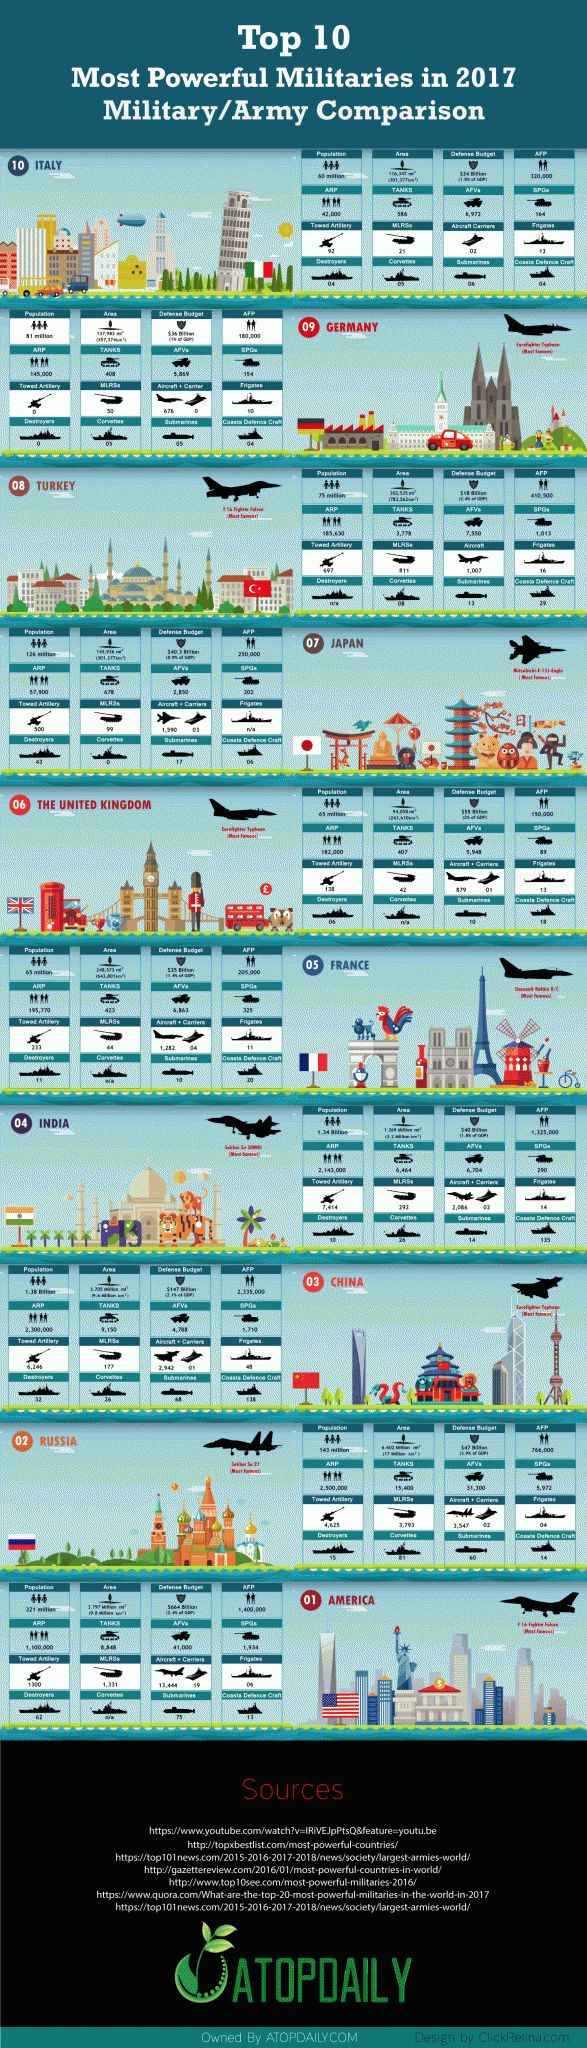 Militaries comparison infographic